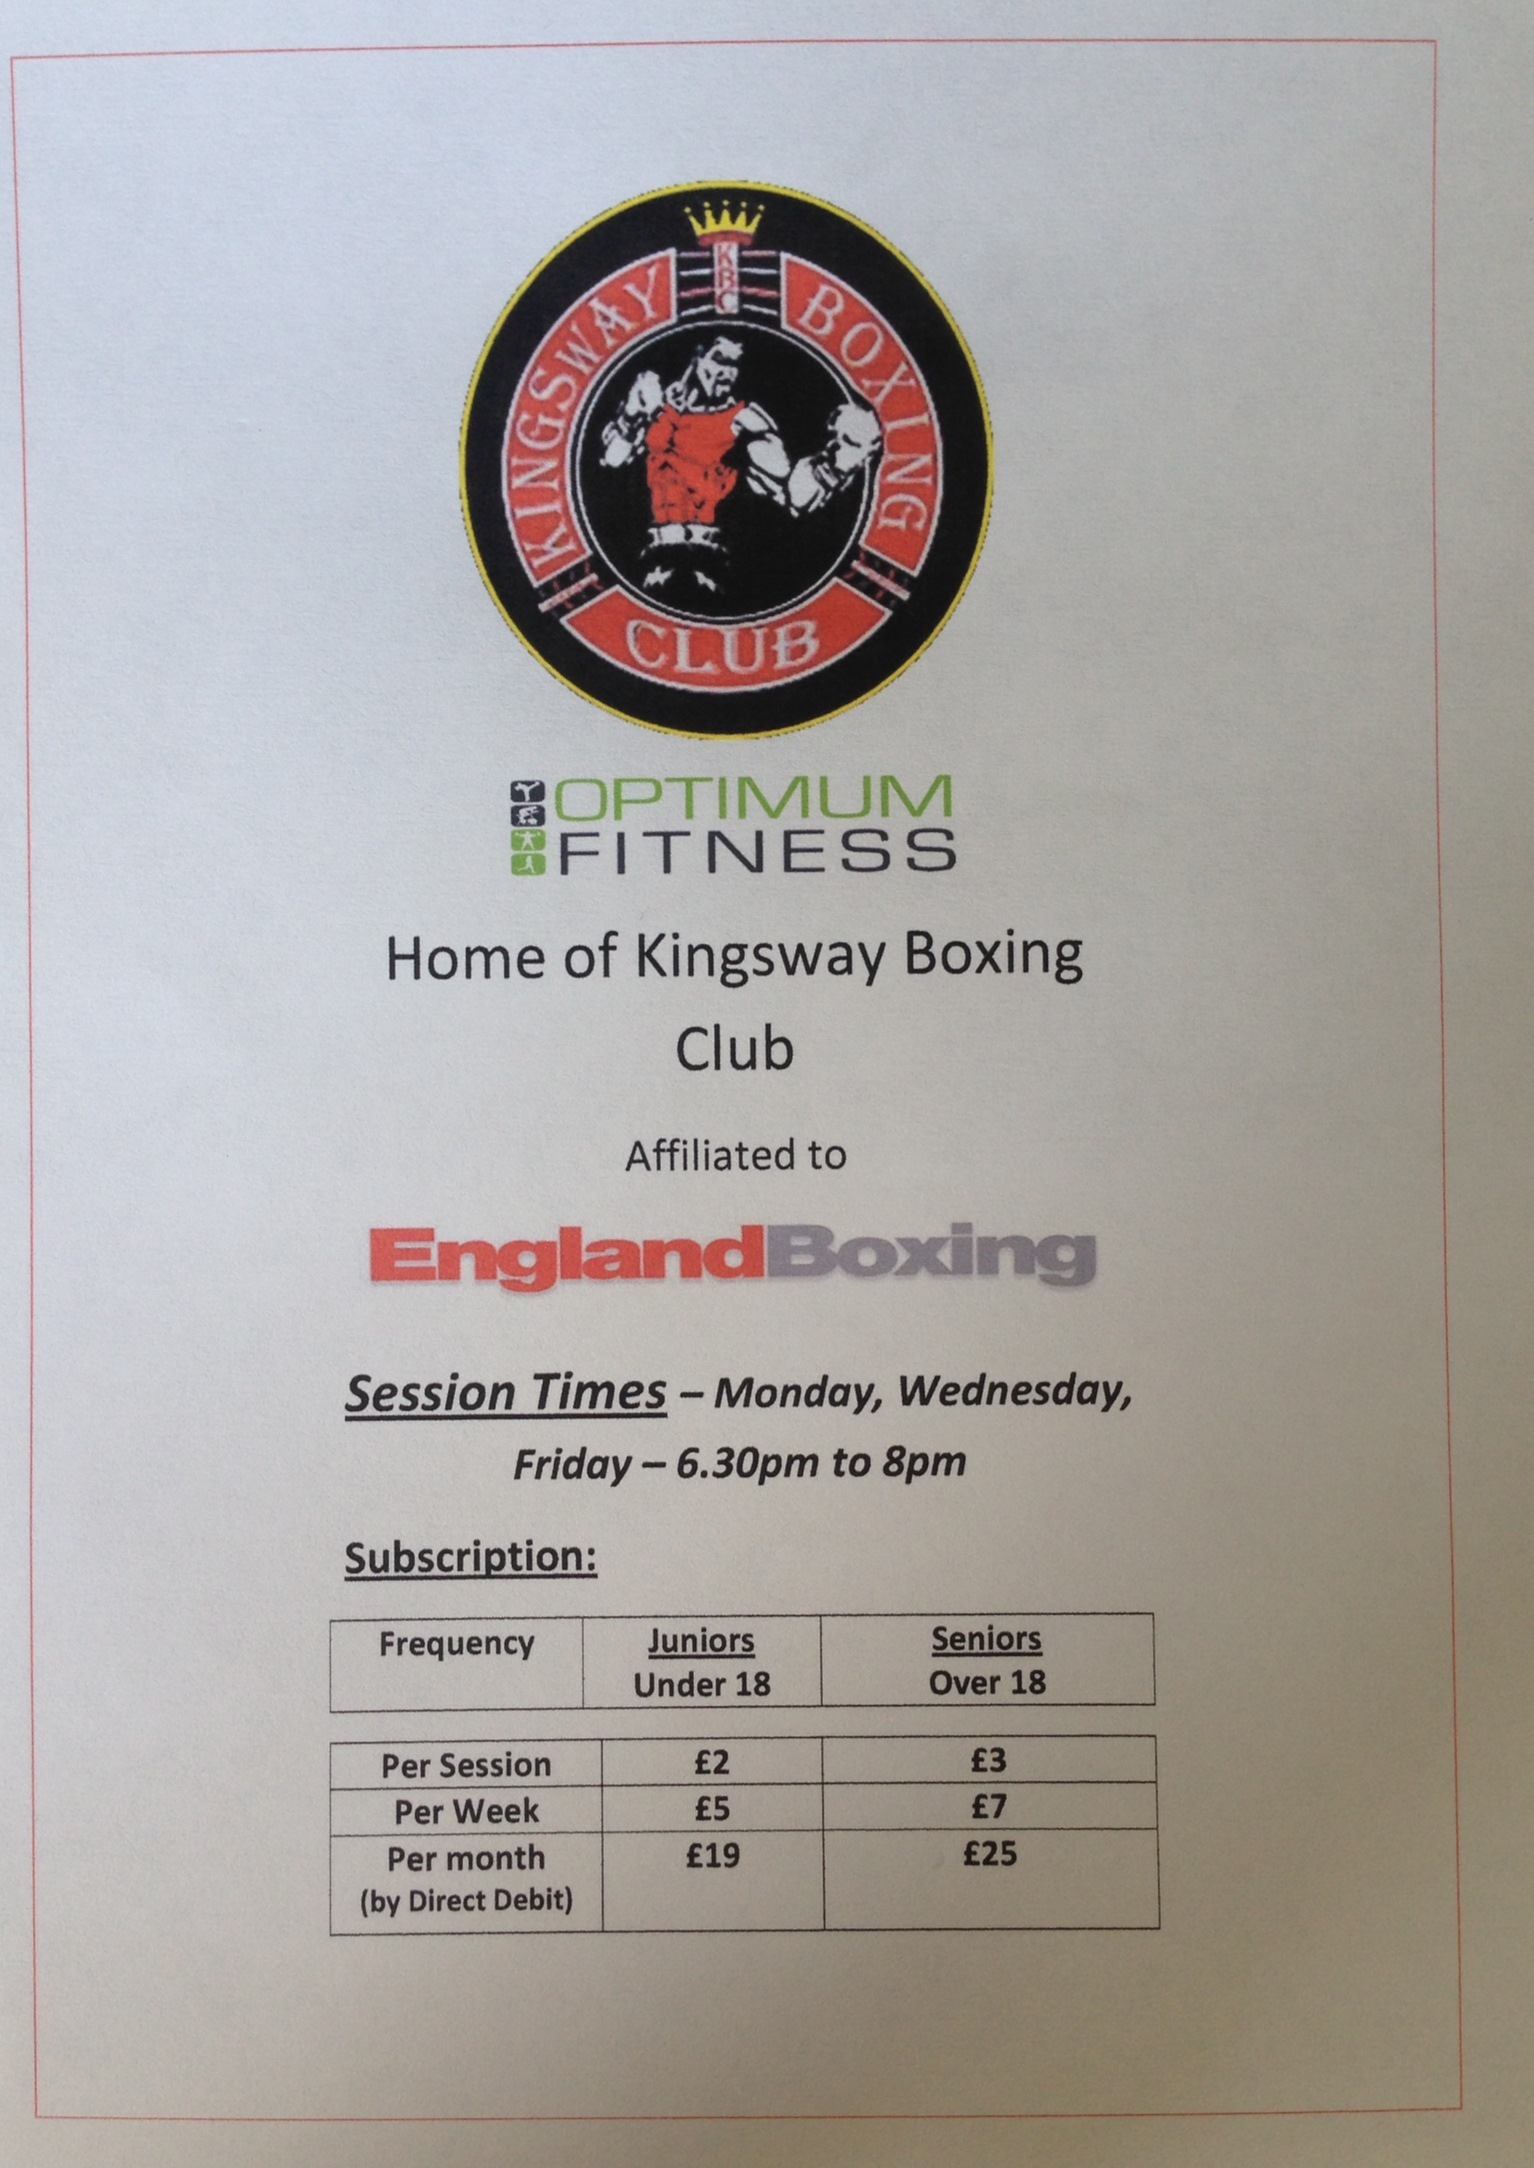 Optimum Fitness Welcomes – Kingsway Boxing Club